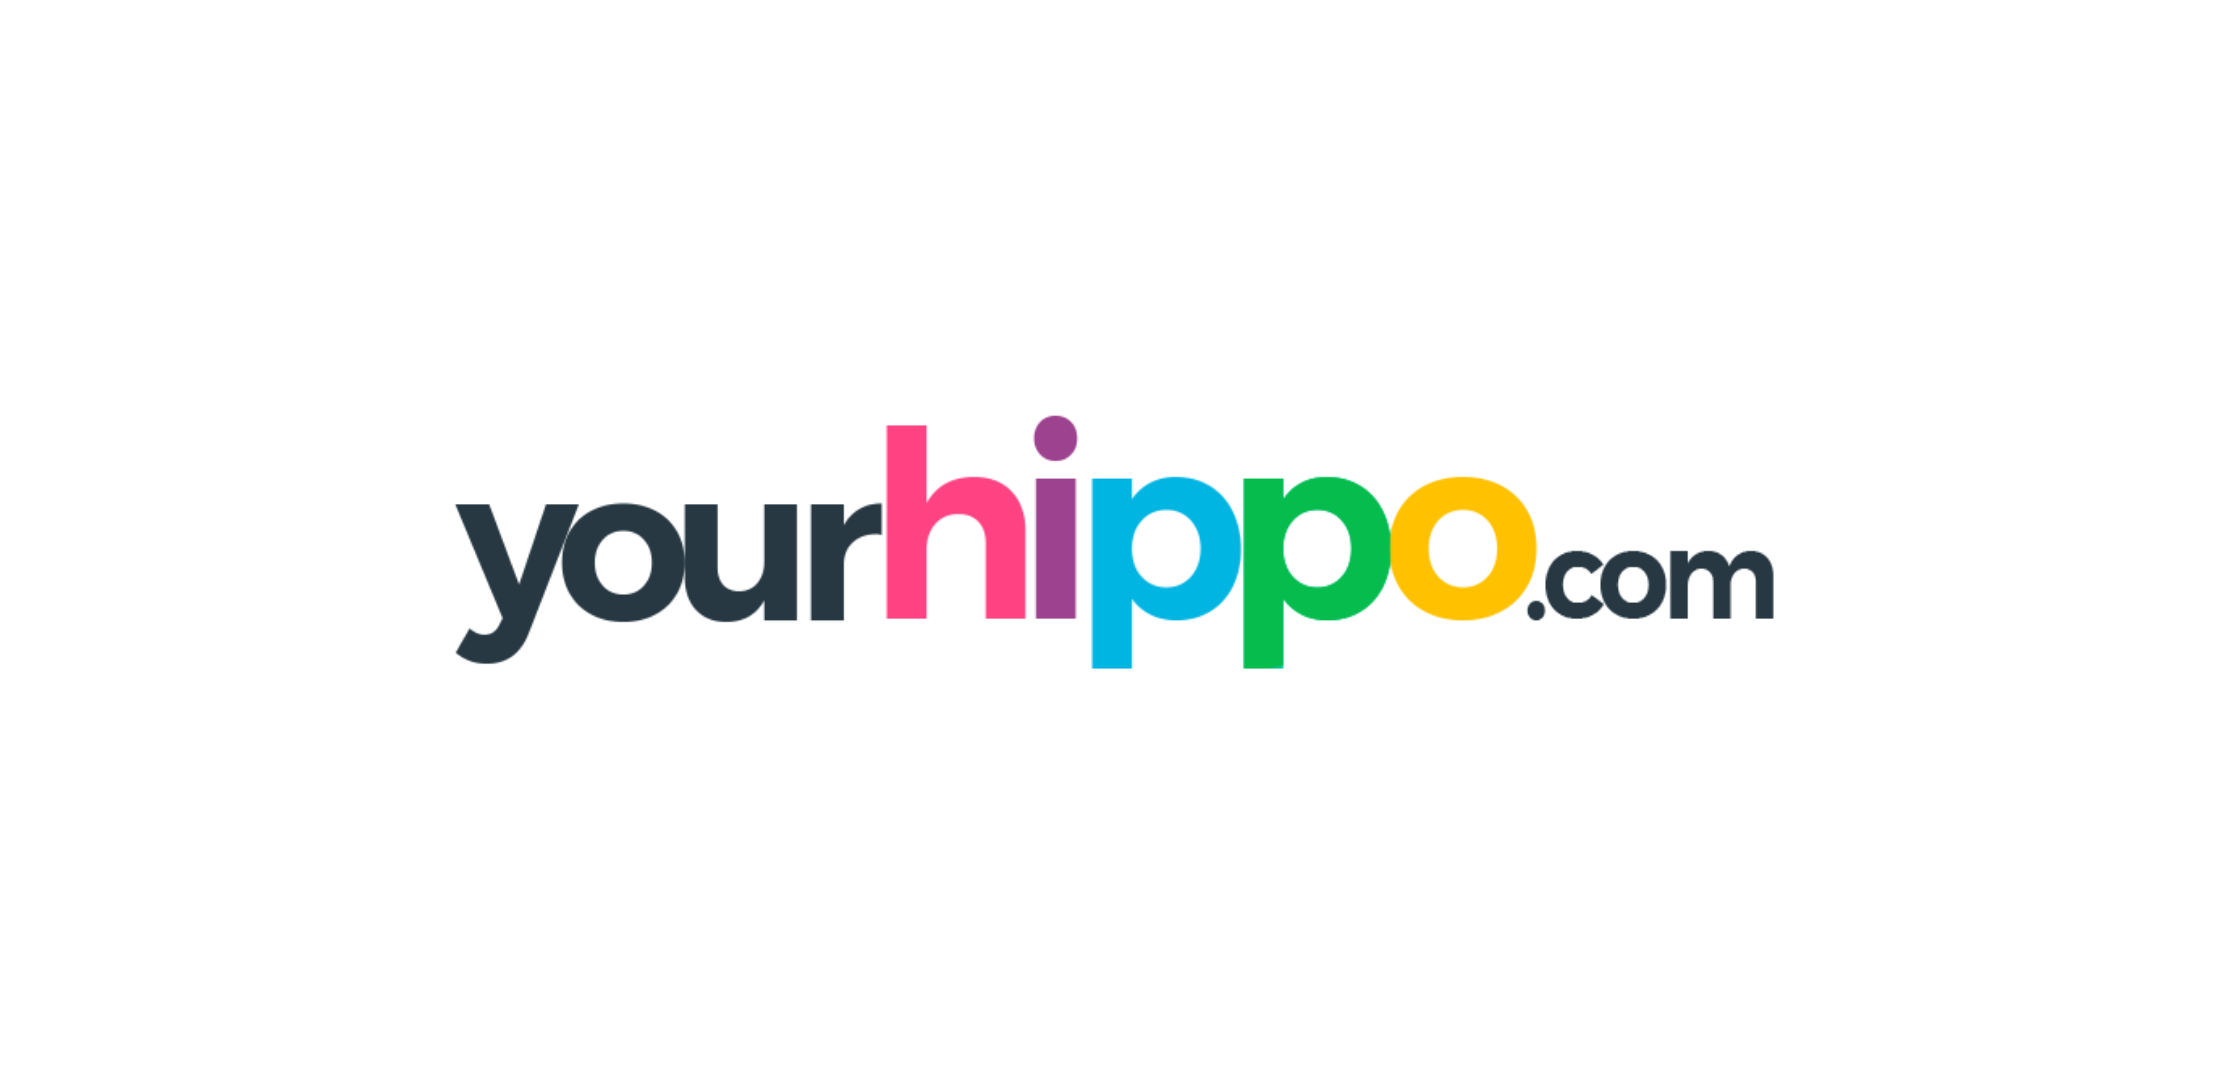 yourhippo.com and Dechoker eLearning